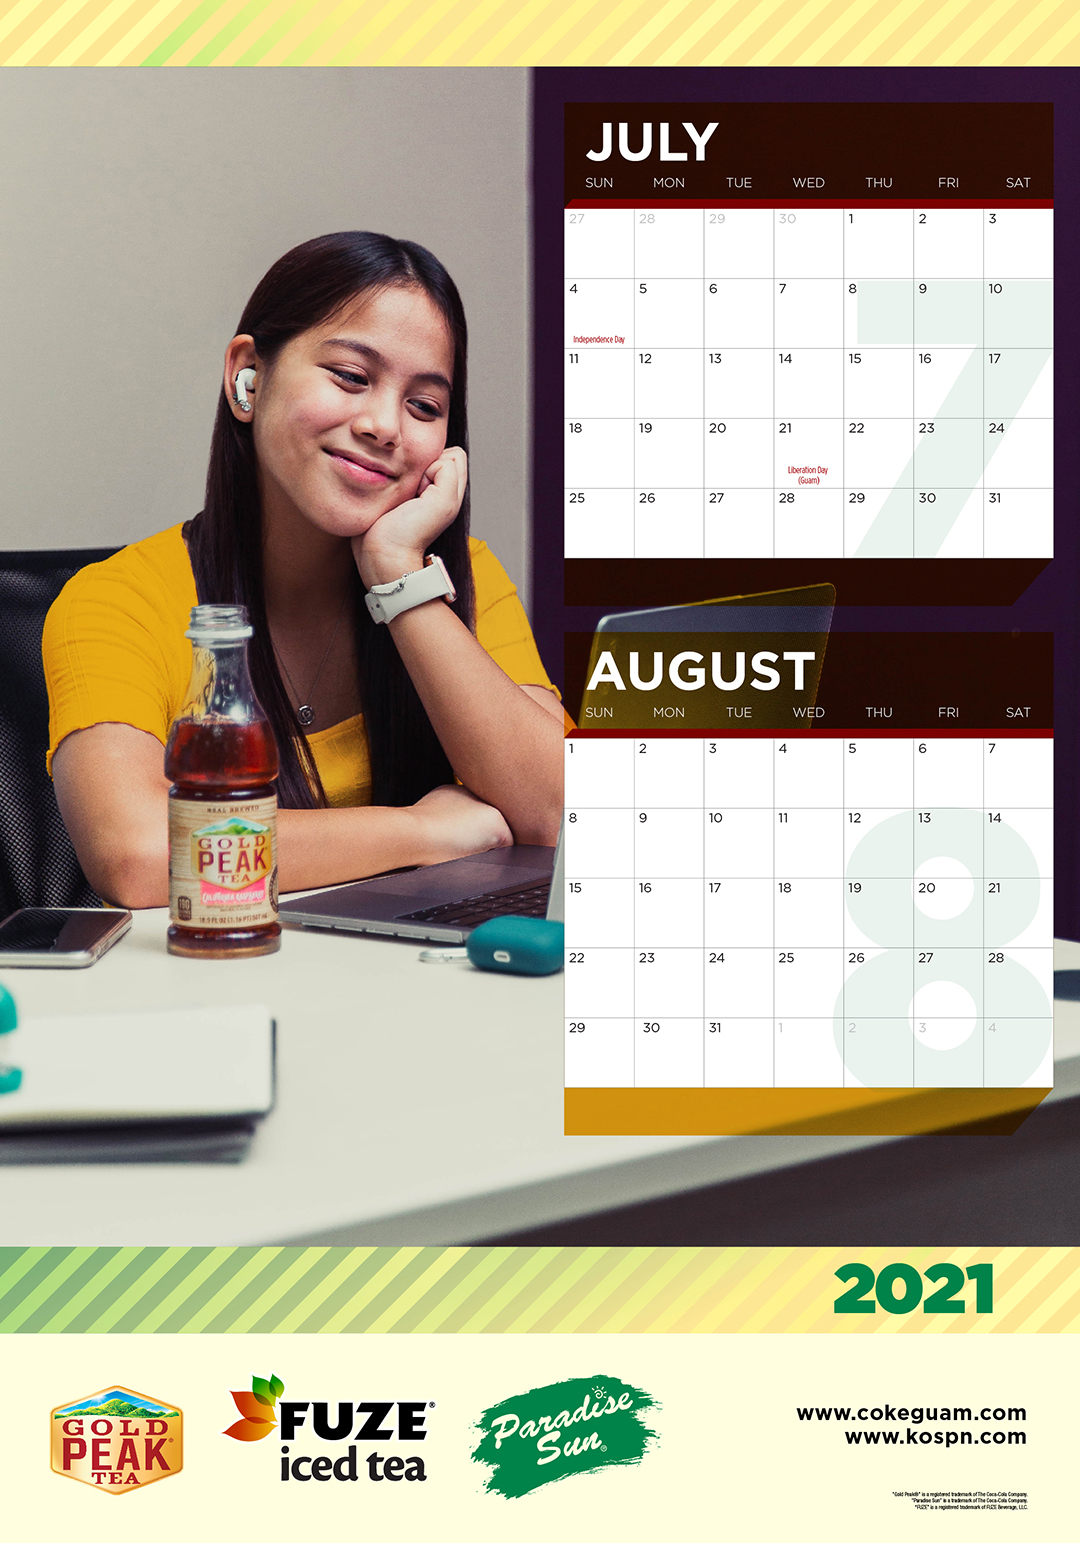 5-20111 Coke 2021 Calendar JULY-DEC